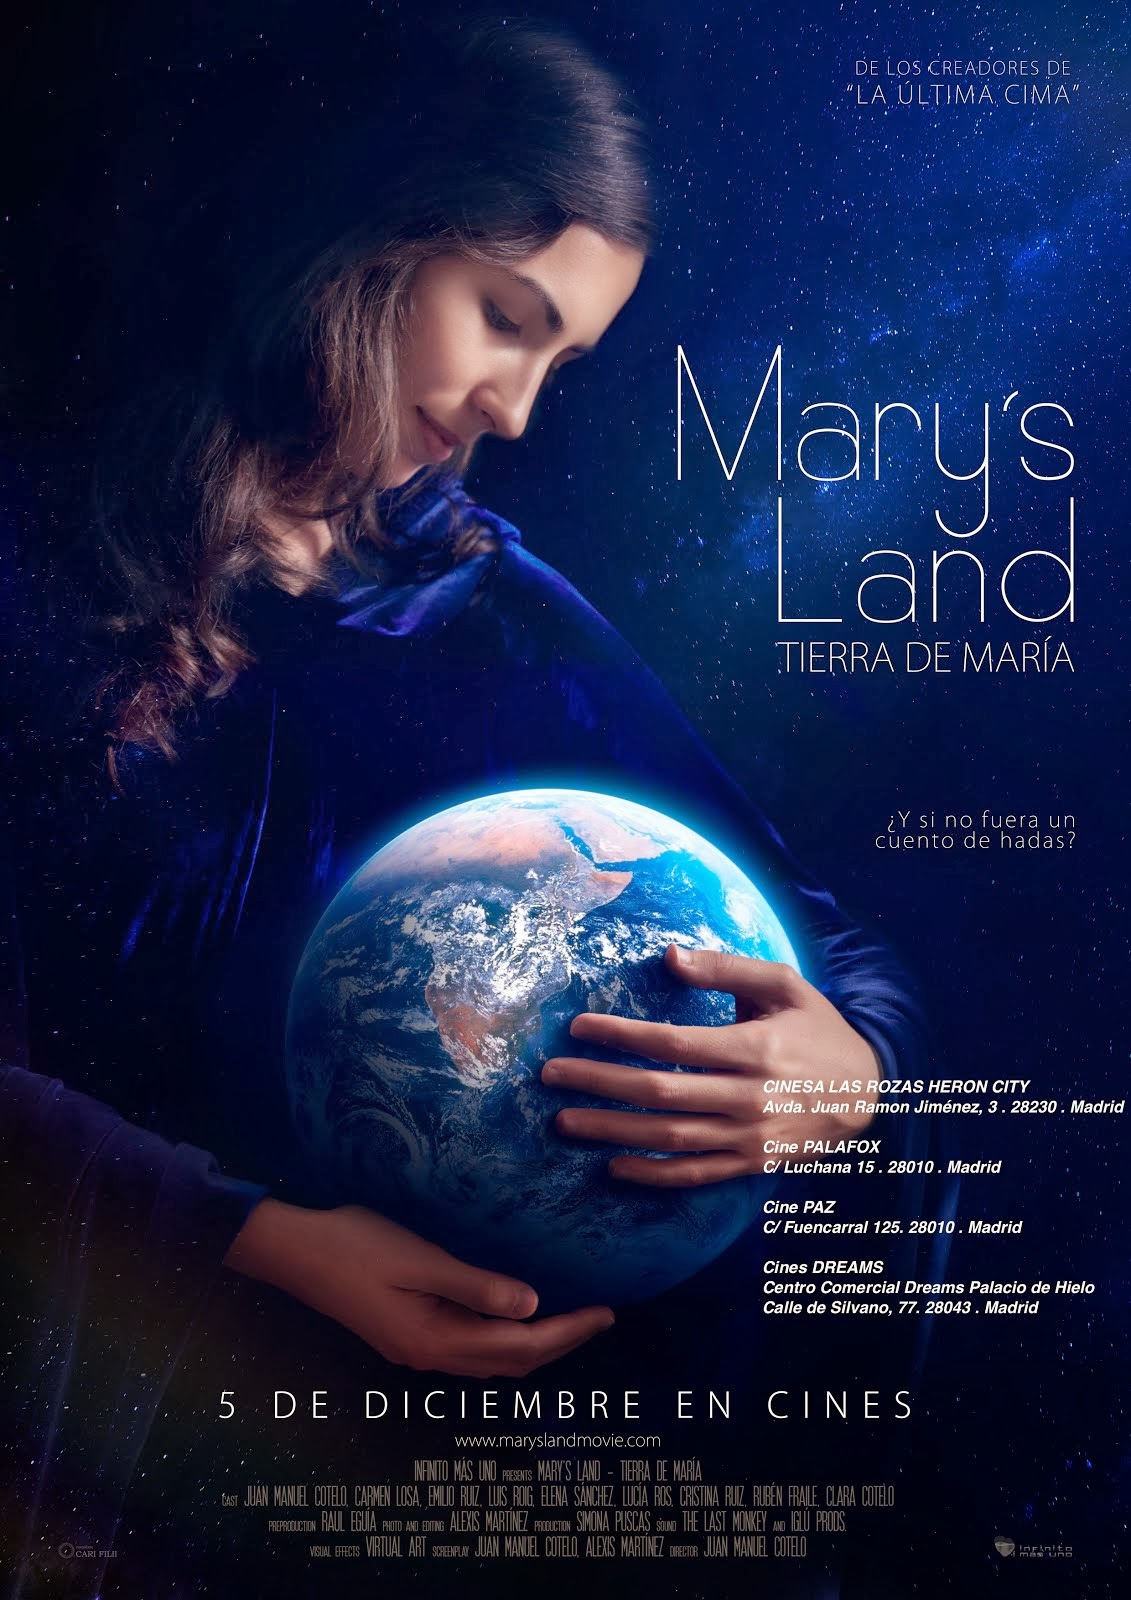 ¿Has visto ya Mary's Land?